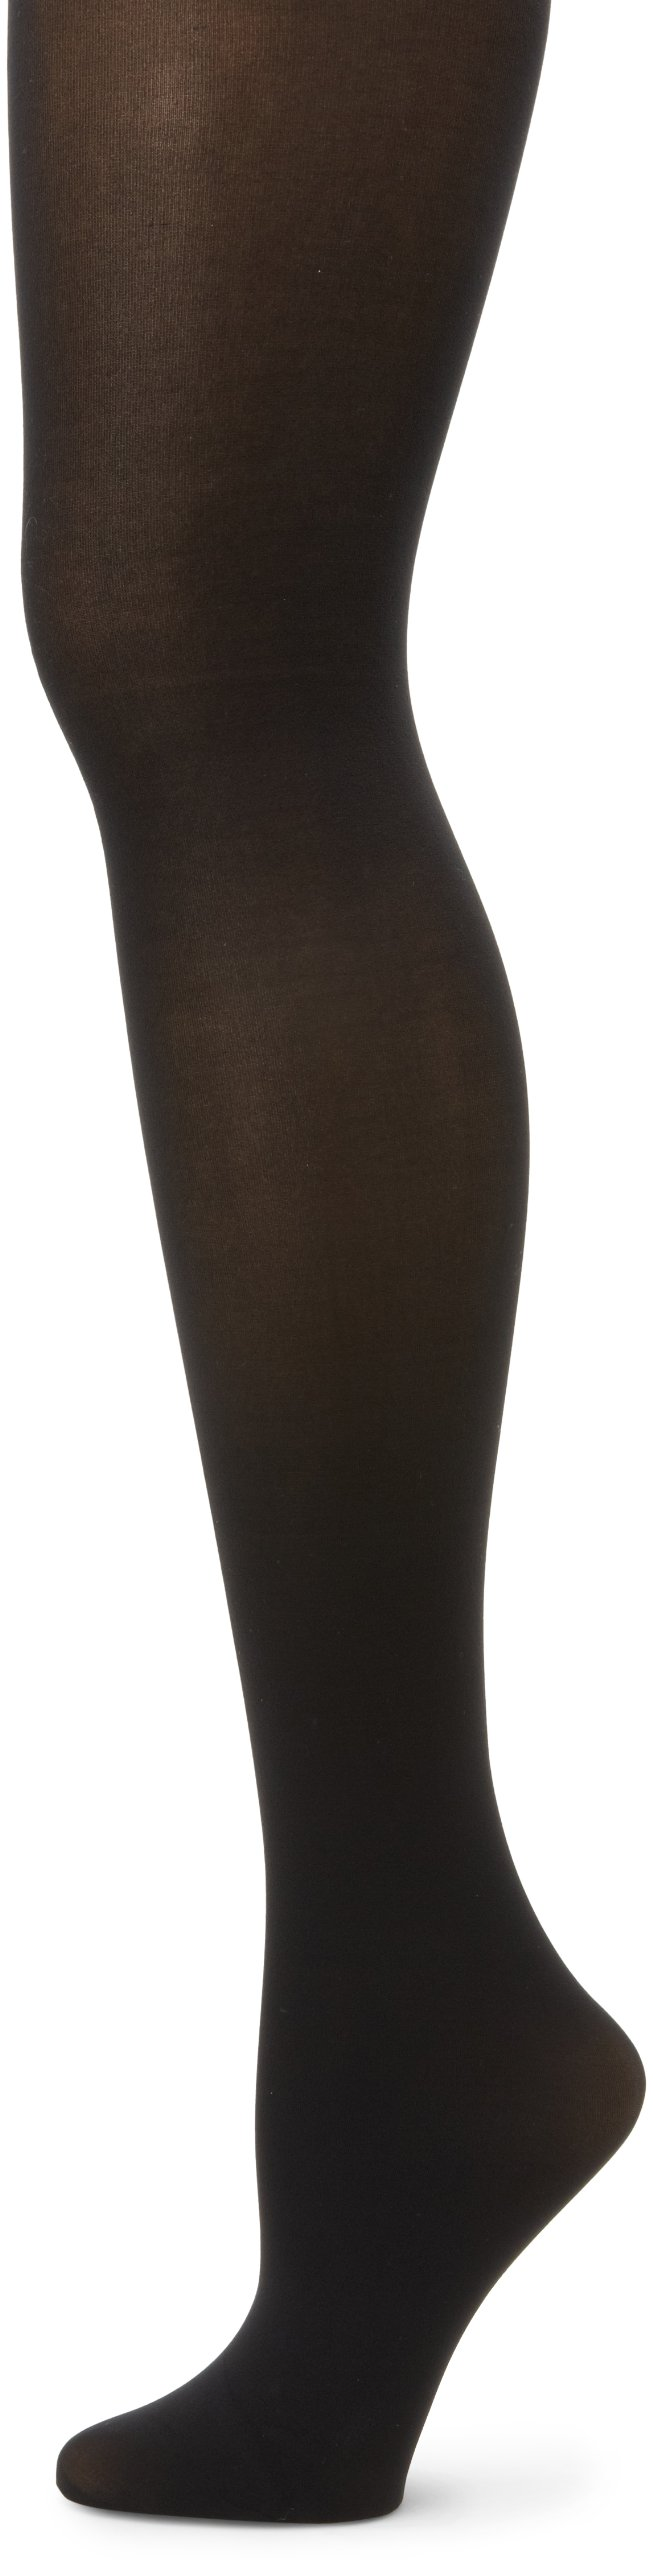 HUE Women's 3-Pack Opaque Control Top Hosiery, Black, Size 2